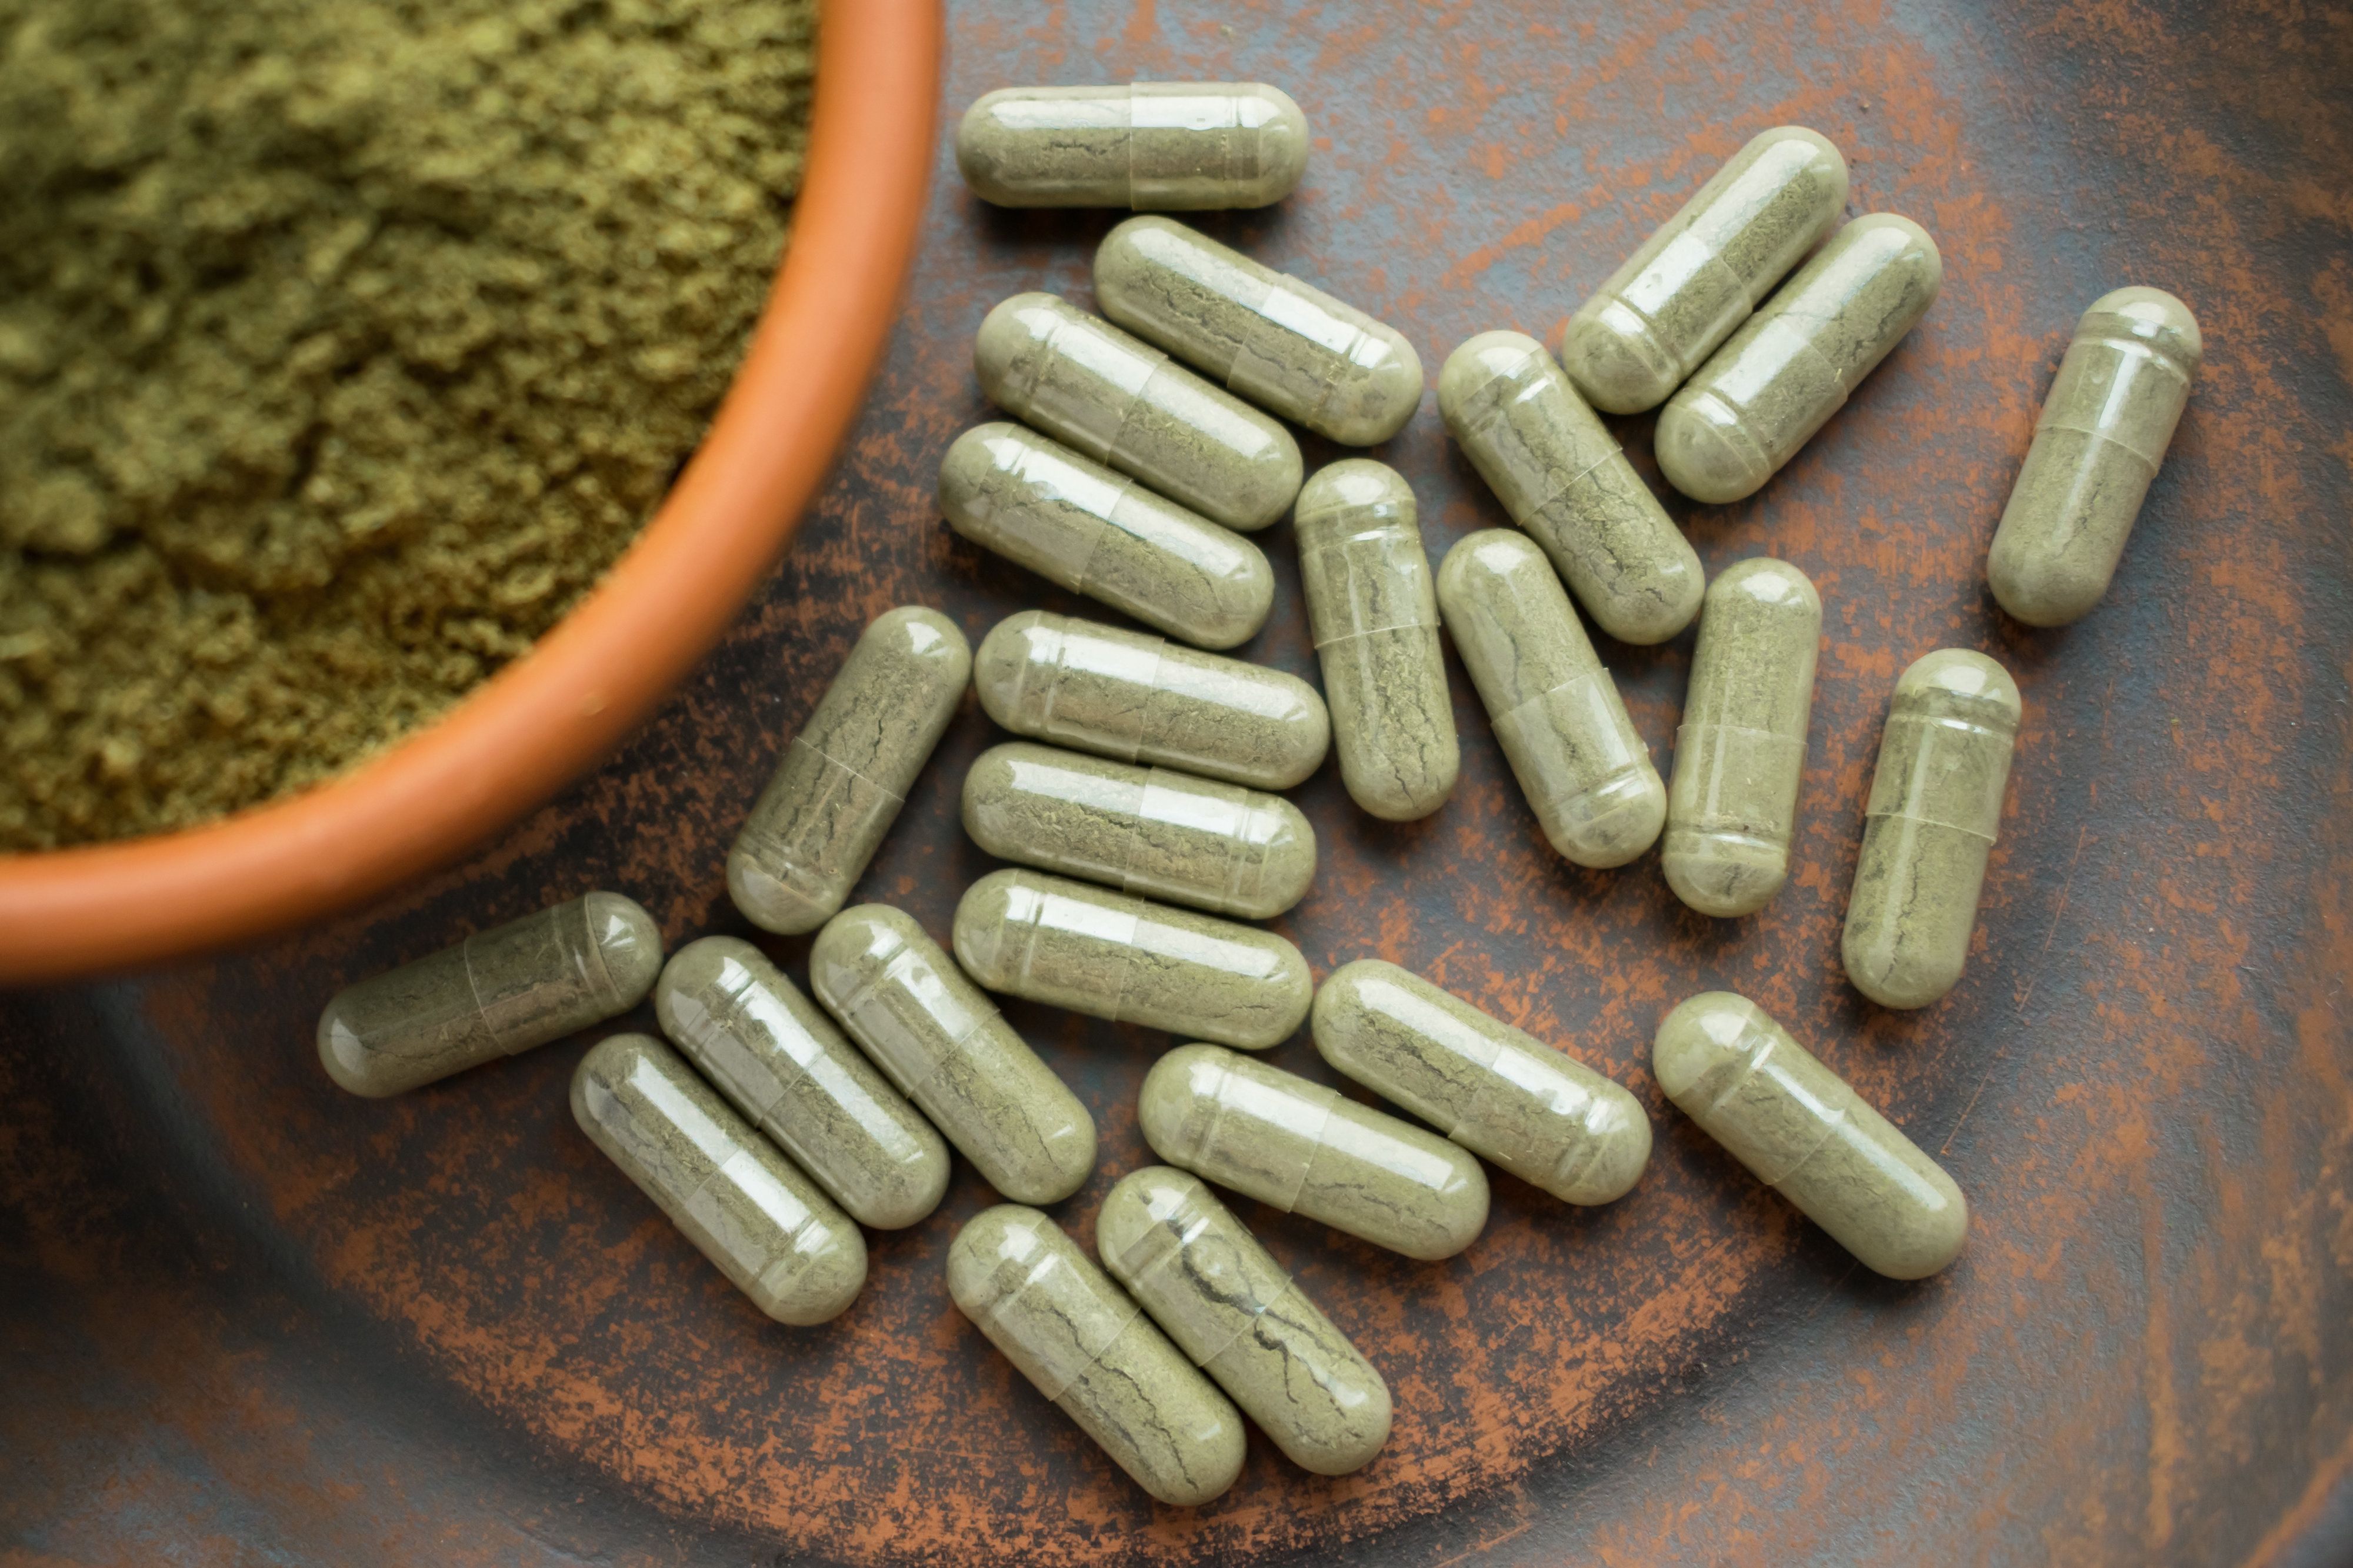 Kratom powder and capsules are seen on a table. Ohio is seeking to ban the popular herbal supplement based on a series of dis